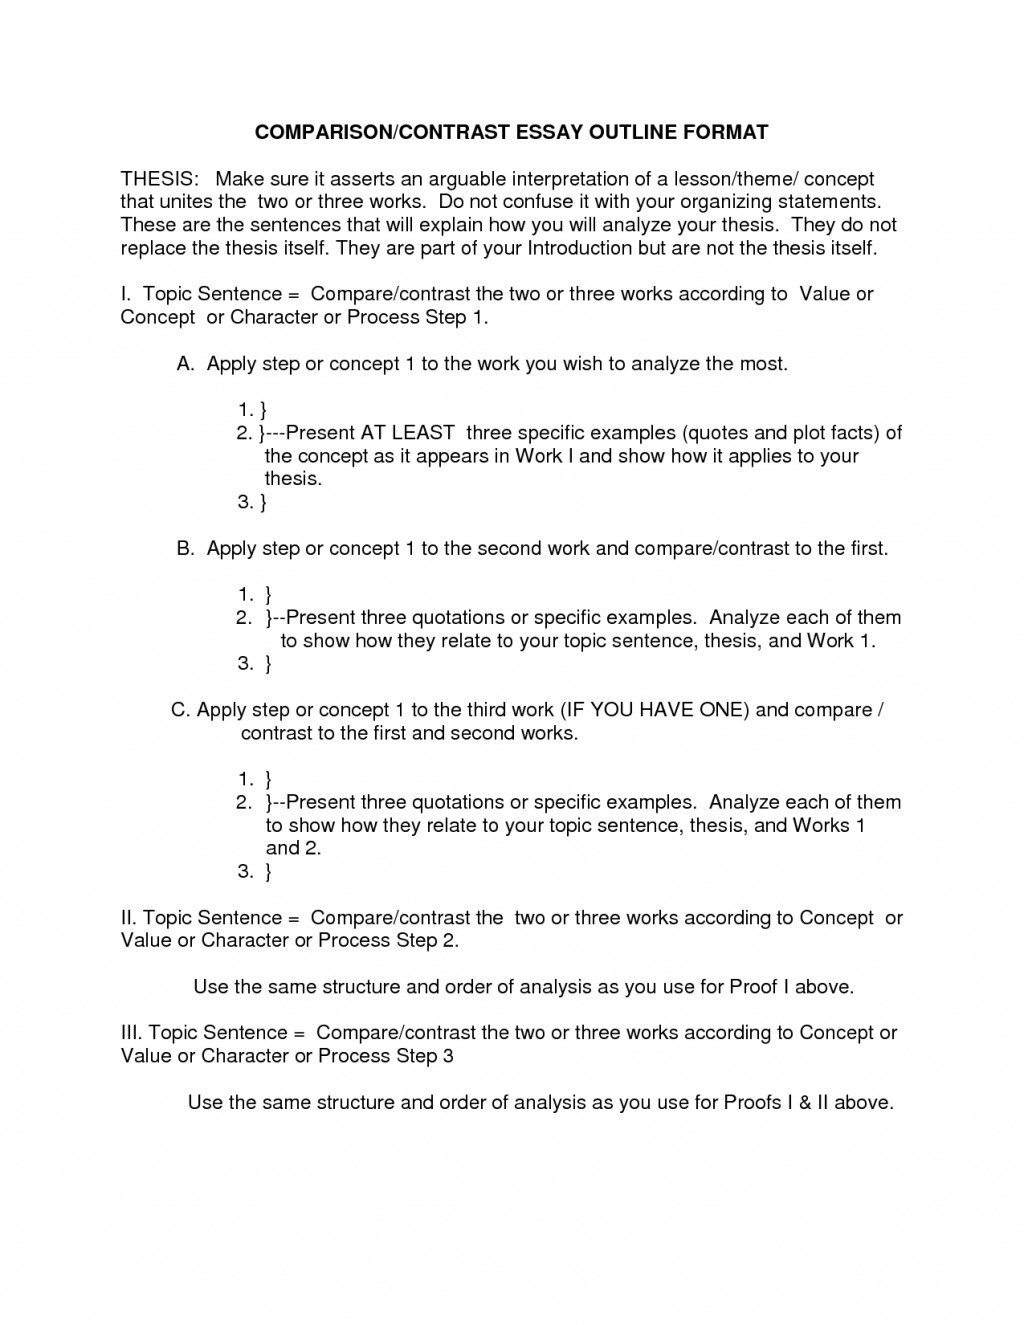 018 Outline Format 2 Essay Example Compare And Sensational Contrast Sample Introduction For Comparison Point-by-point Of An Paragraph Large